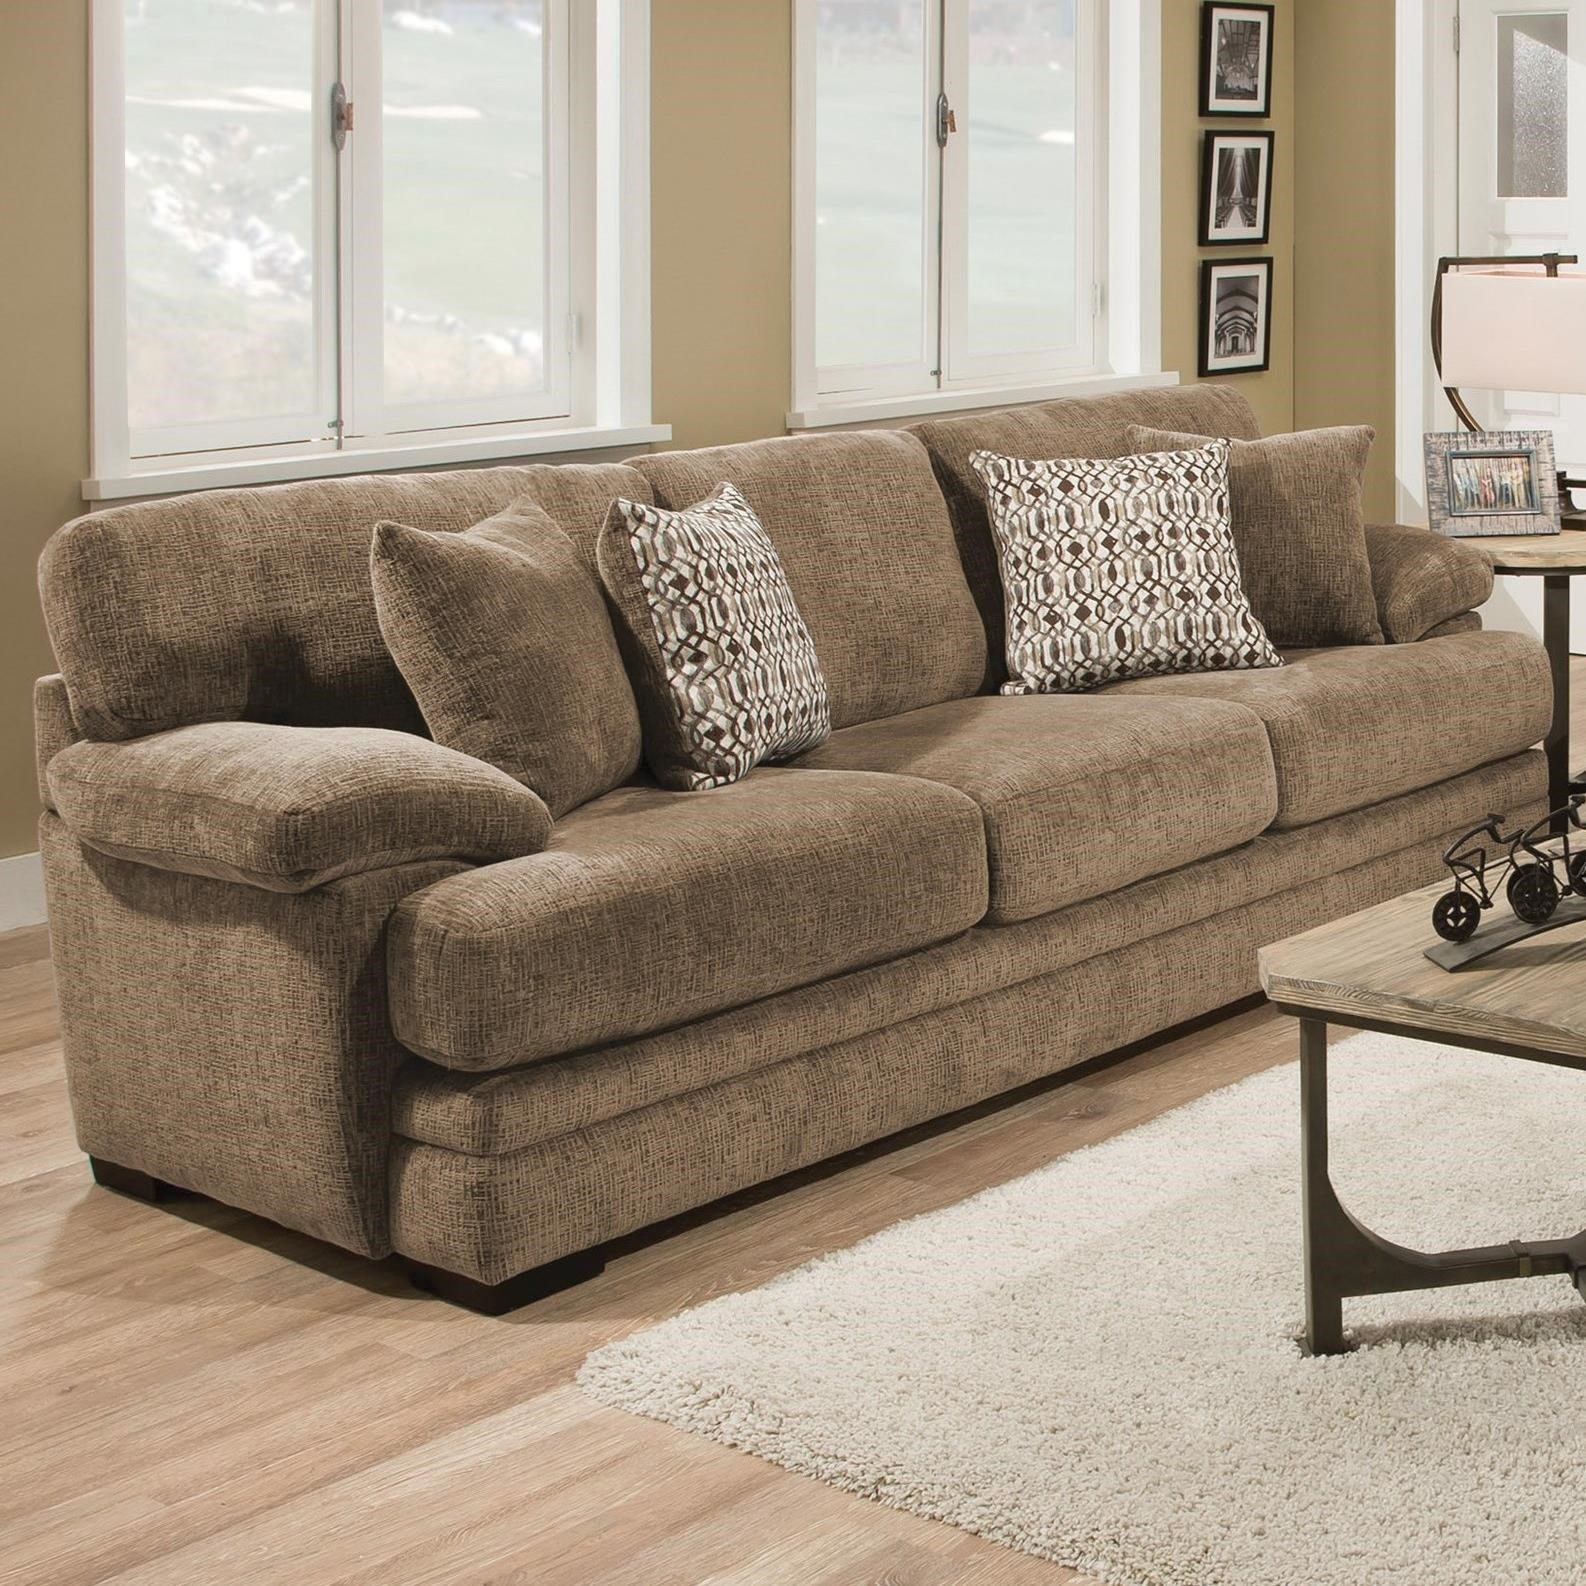 Albany 8662 Sofa - Item Number: 8662-00-GENS-24718